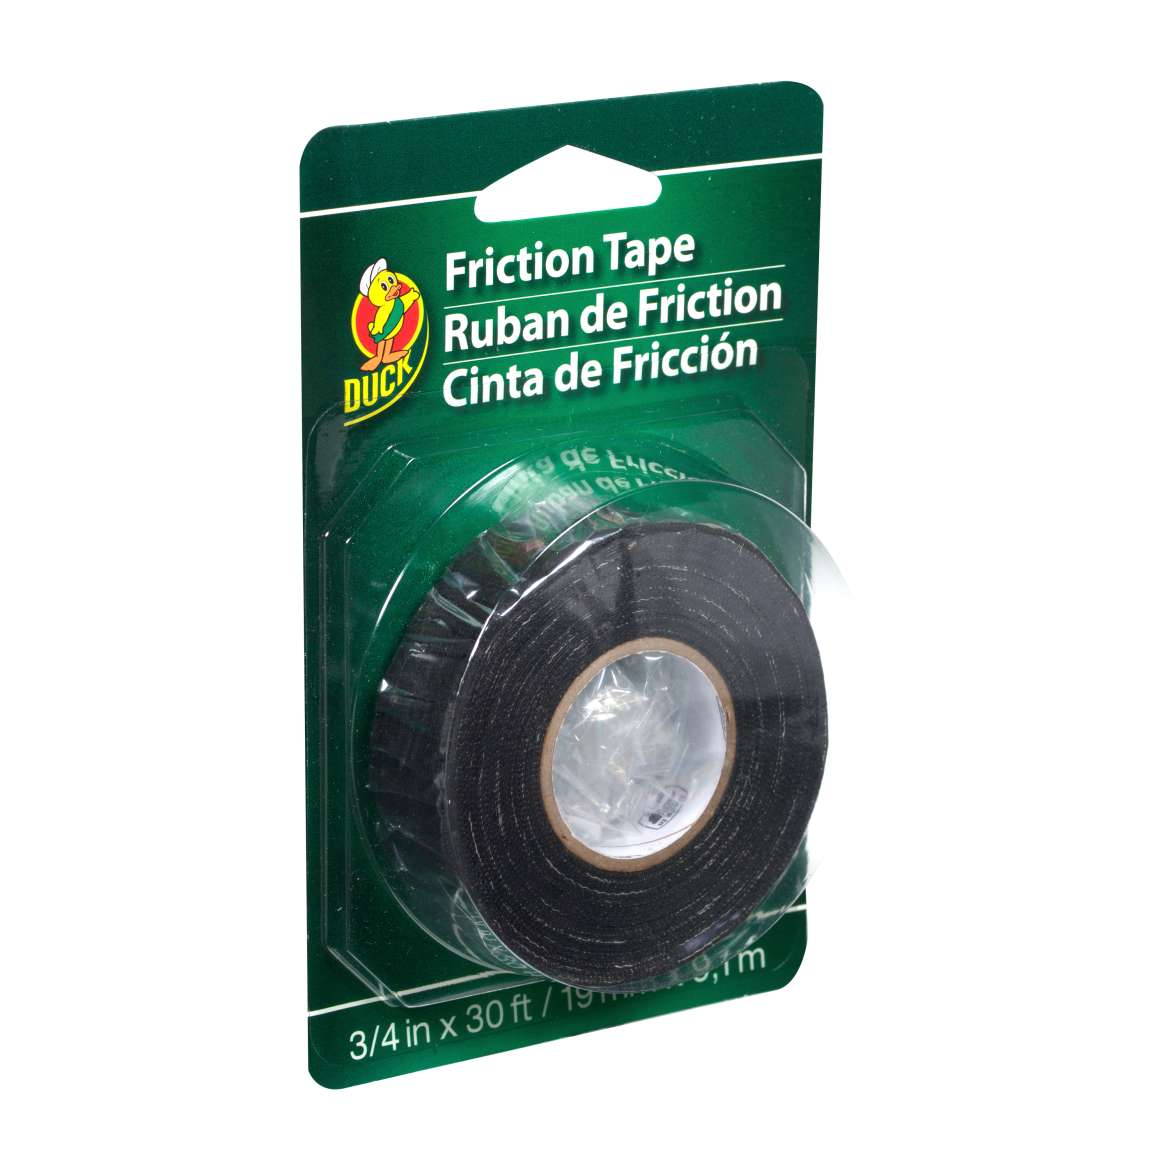 Duck® Brand Friction Tape - Black, .75 in. x 30 ft. Image